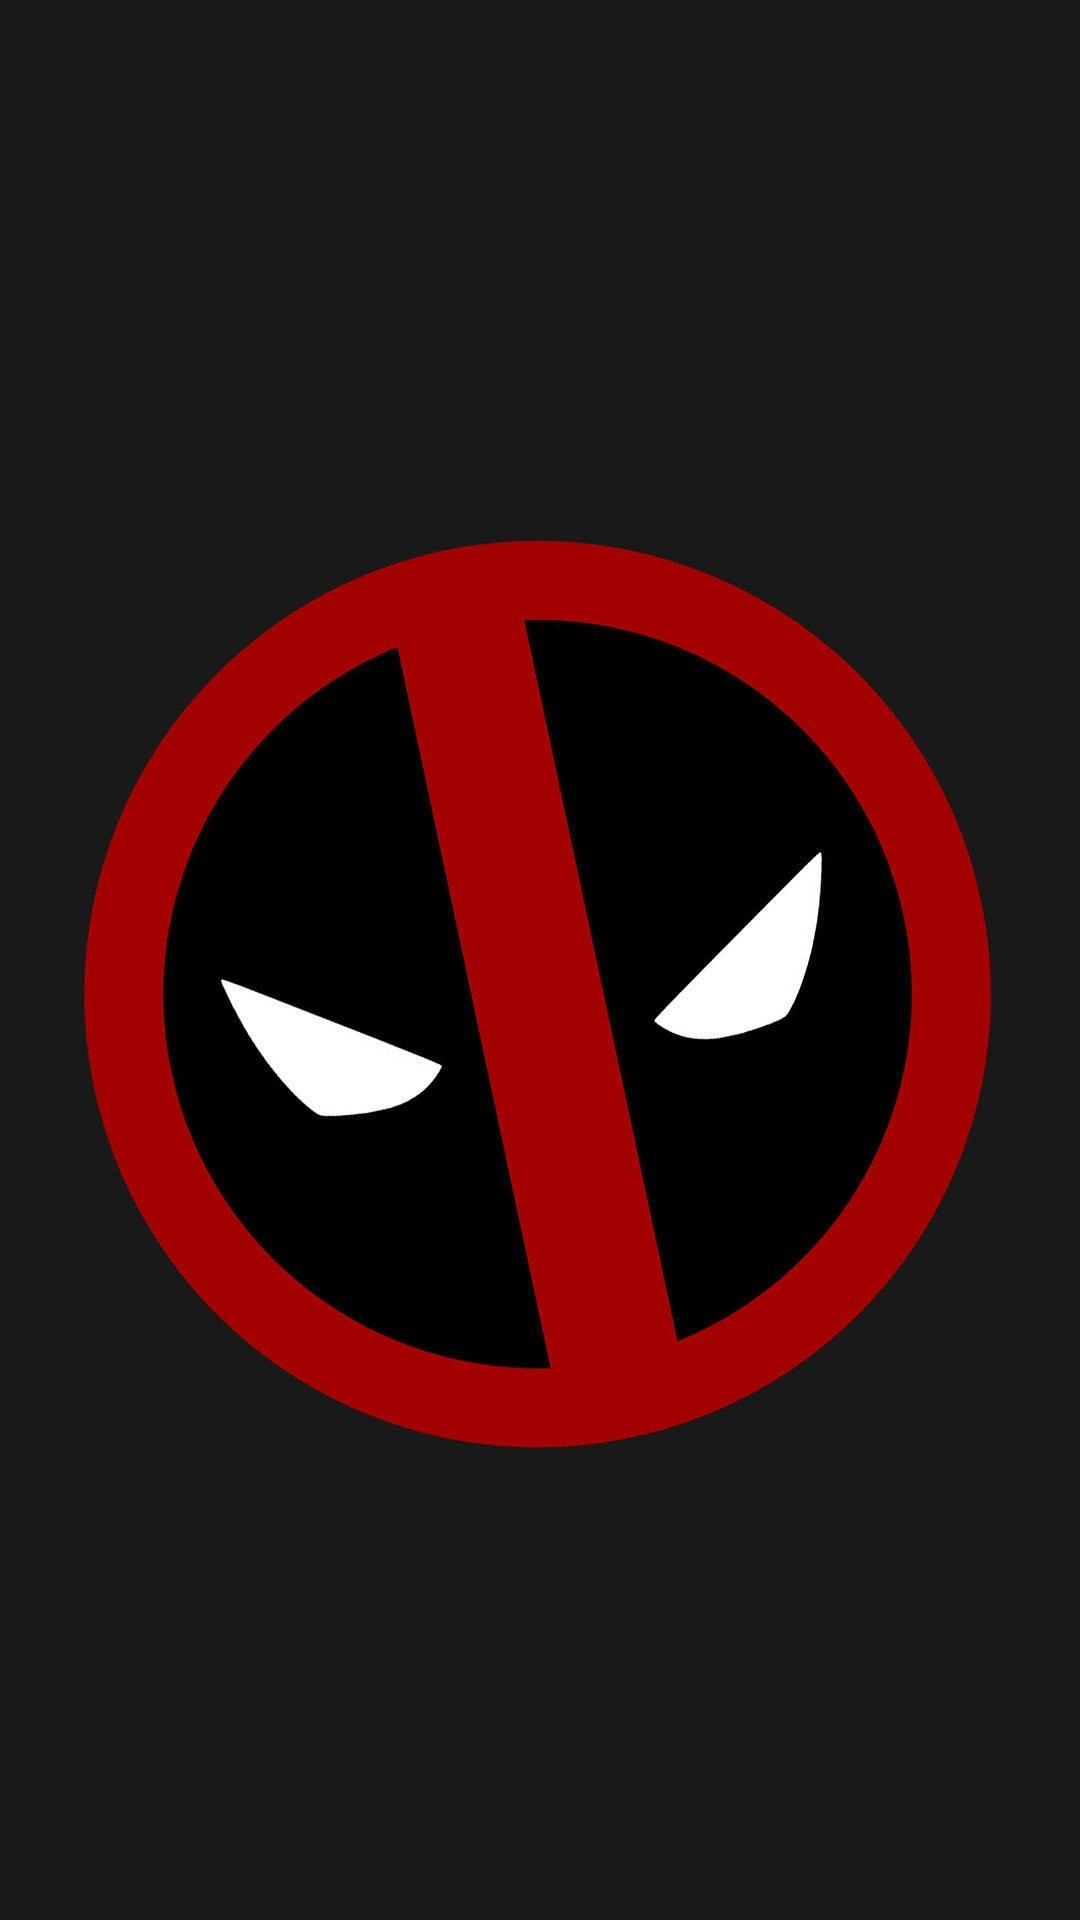 Deadpool Hd Wallpapers For Oneplus 3 Wallpapers Pictures